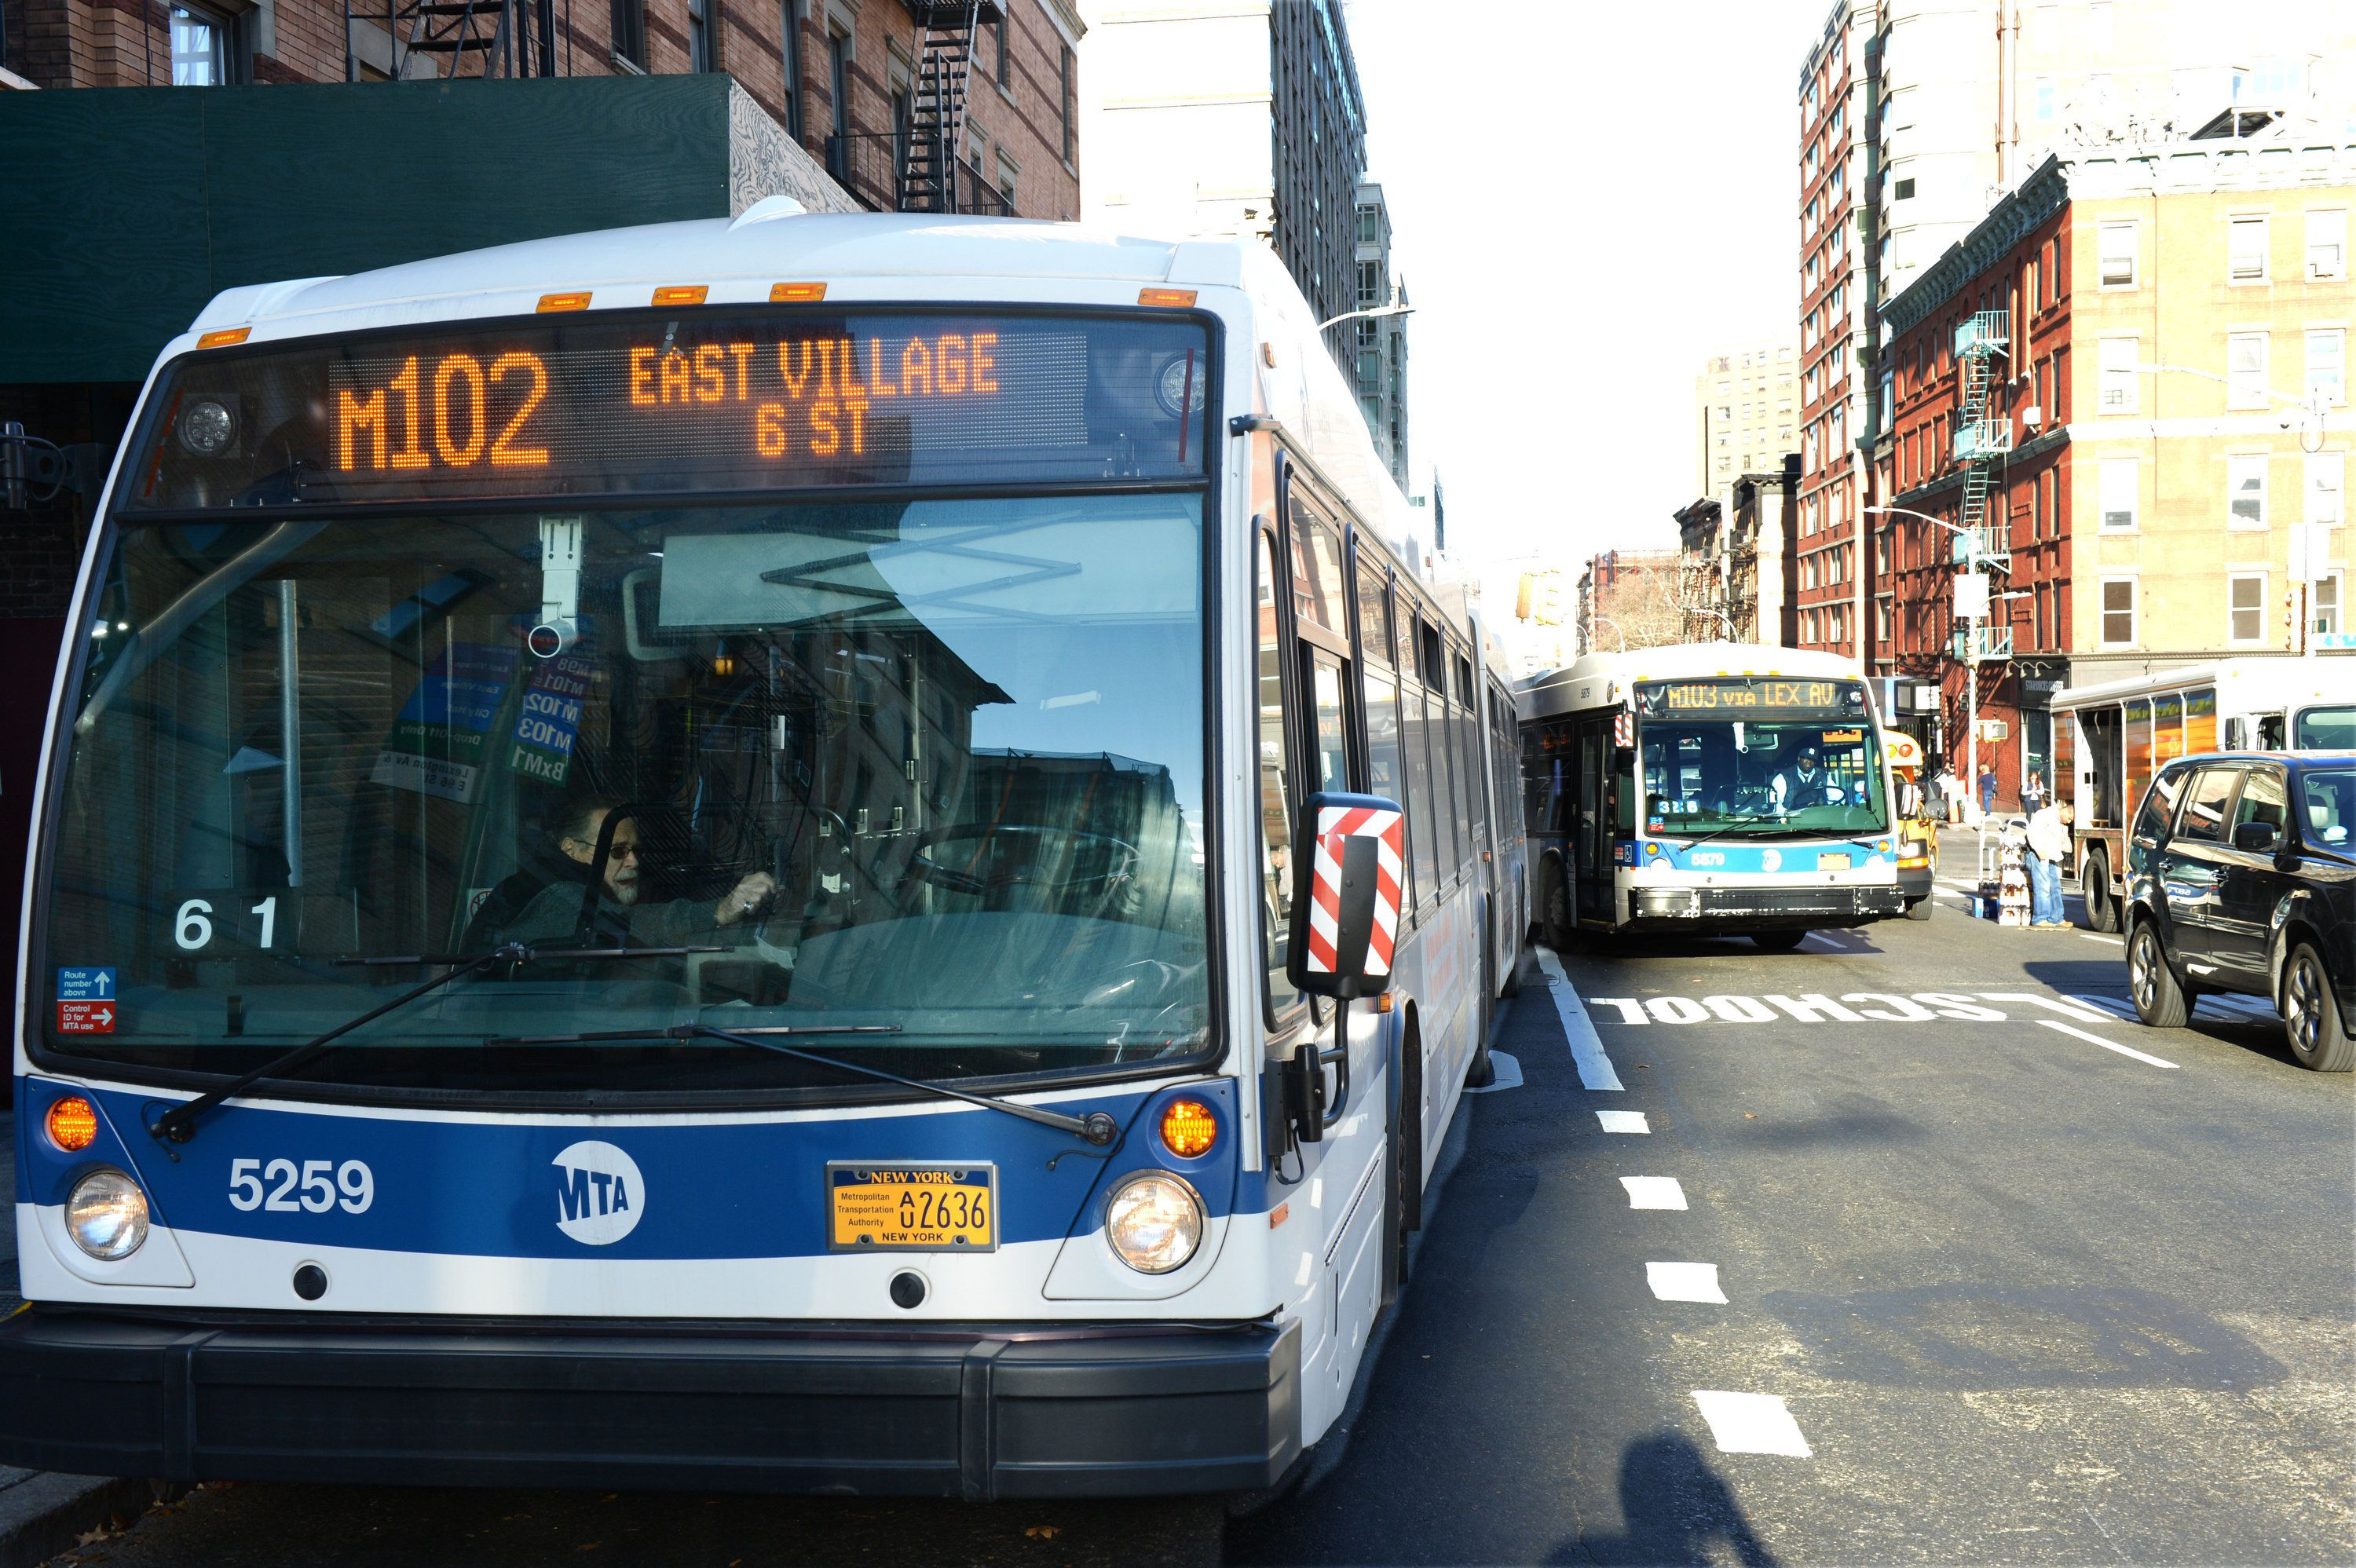 M102 MTA Bus and M103 Bus on Lexington Ave. near E 95 St. in Manhattan on Tuesday, December 15, 2015. (Photo by Andrew Savulich/NY Daily News via Getty Images)